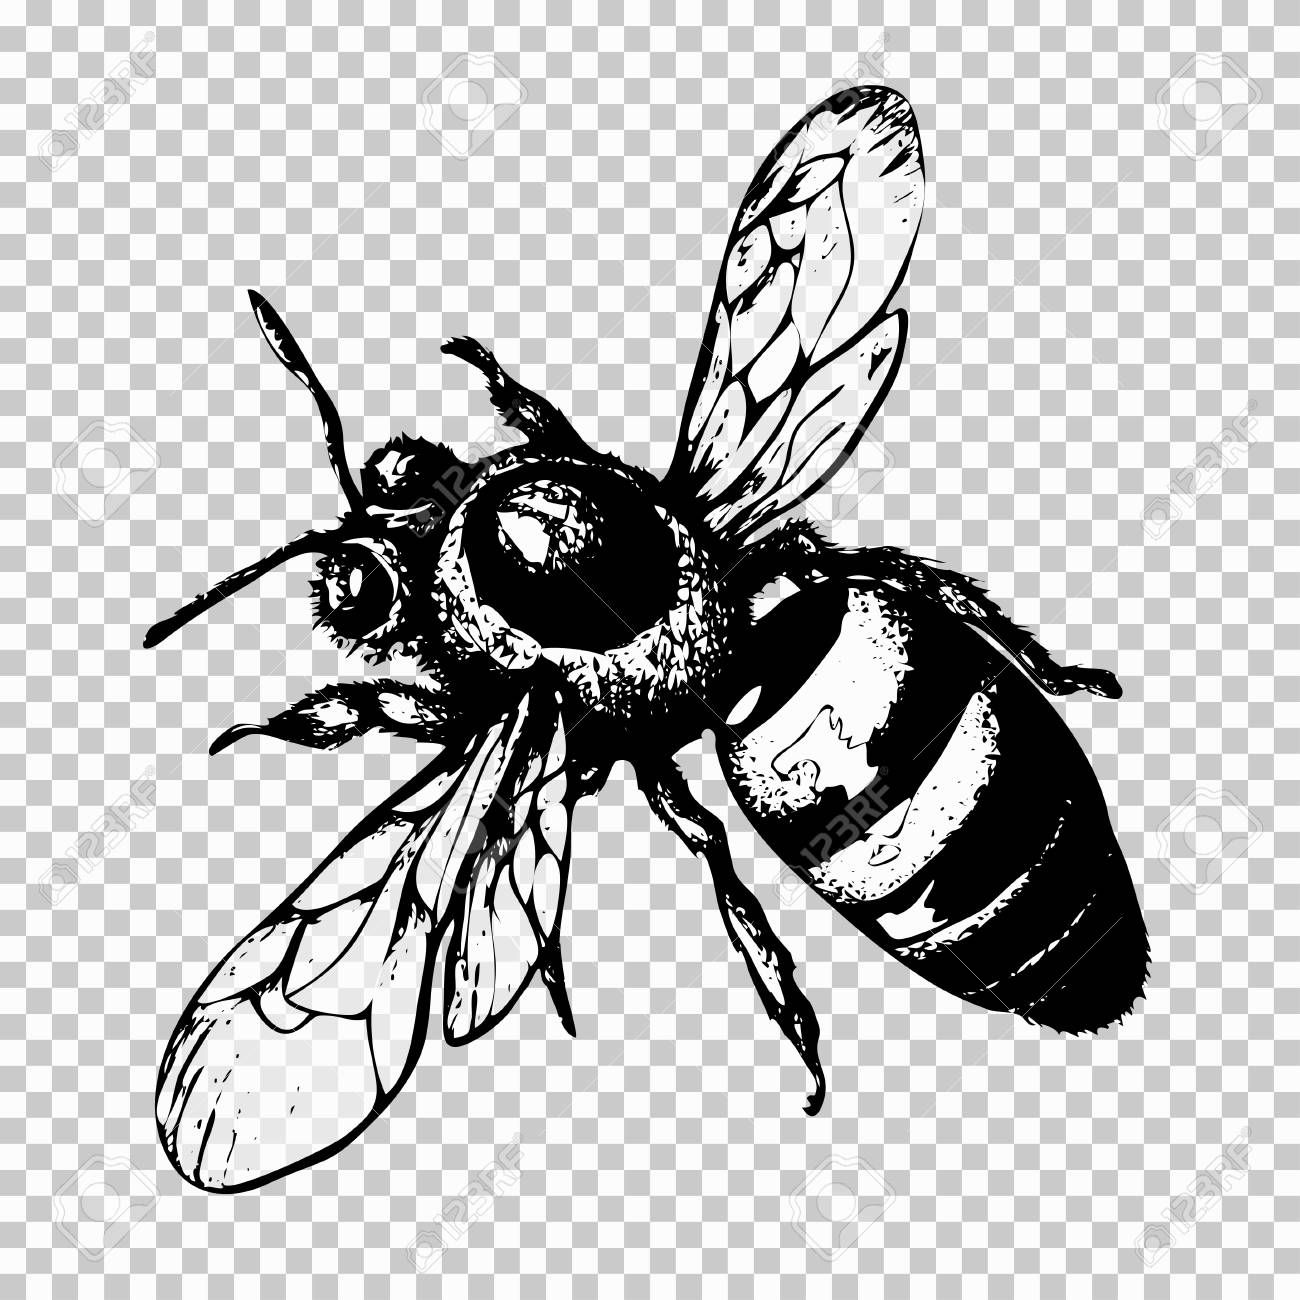 Bee hand drawing black sketch insect on a transparent background vector illustration stock